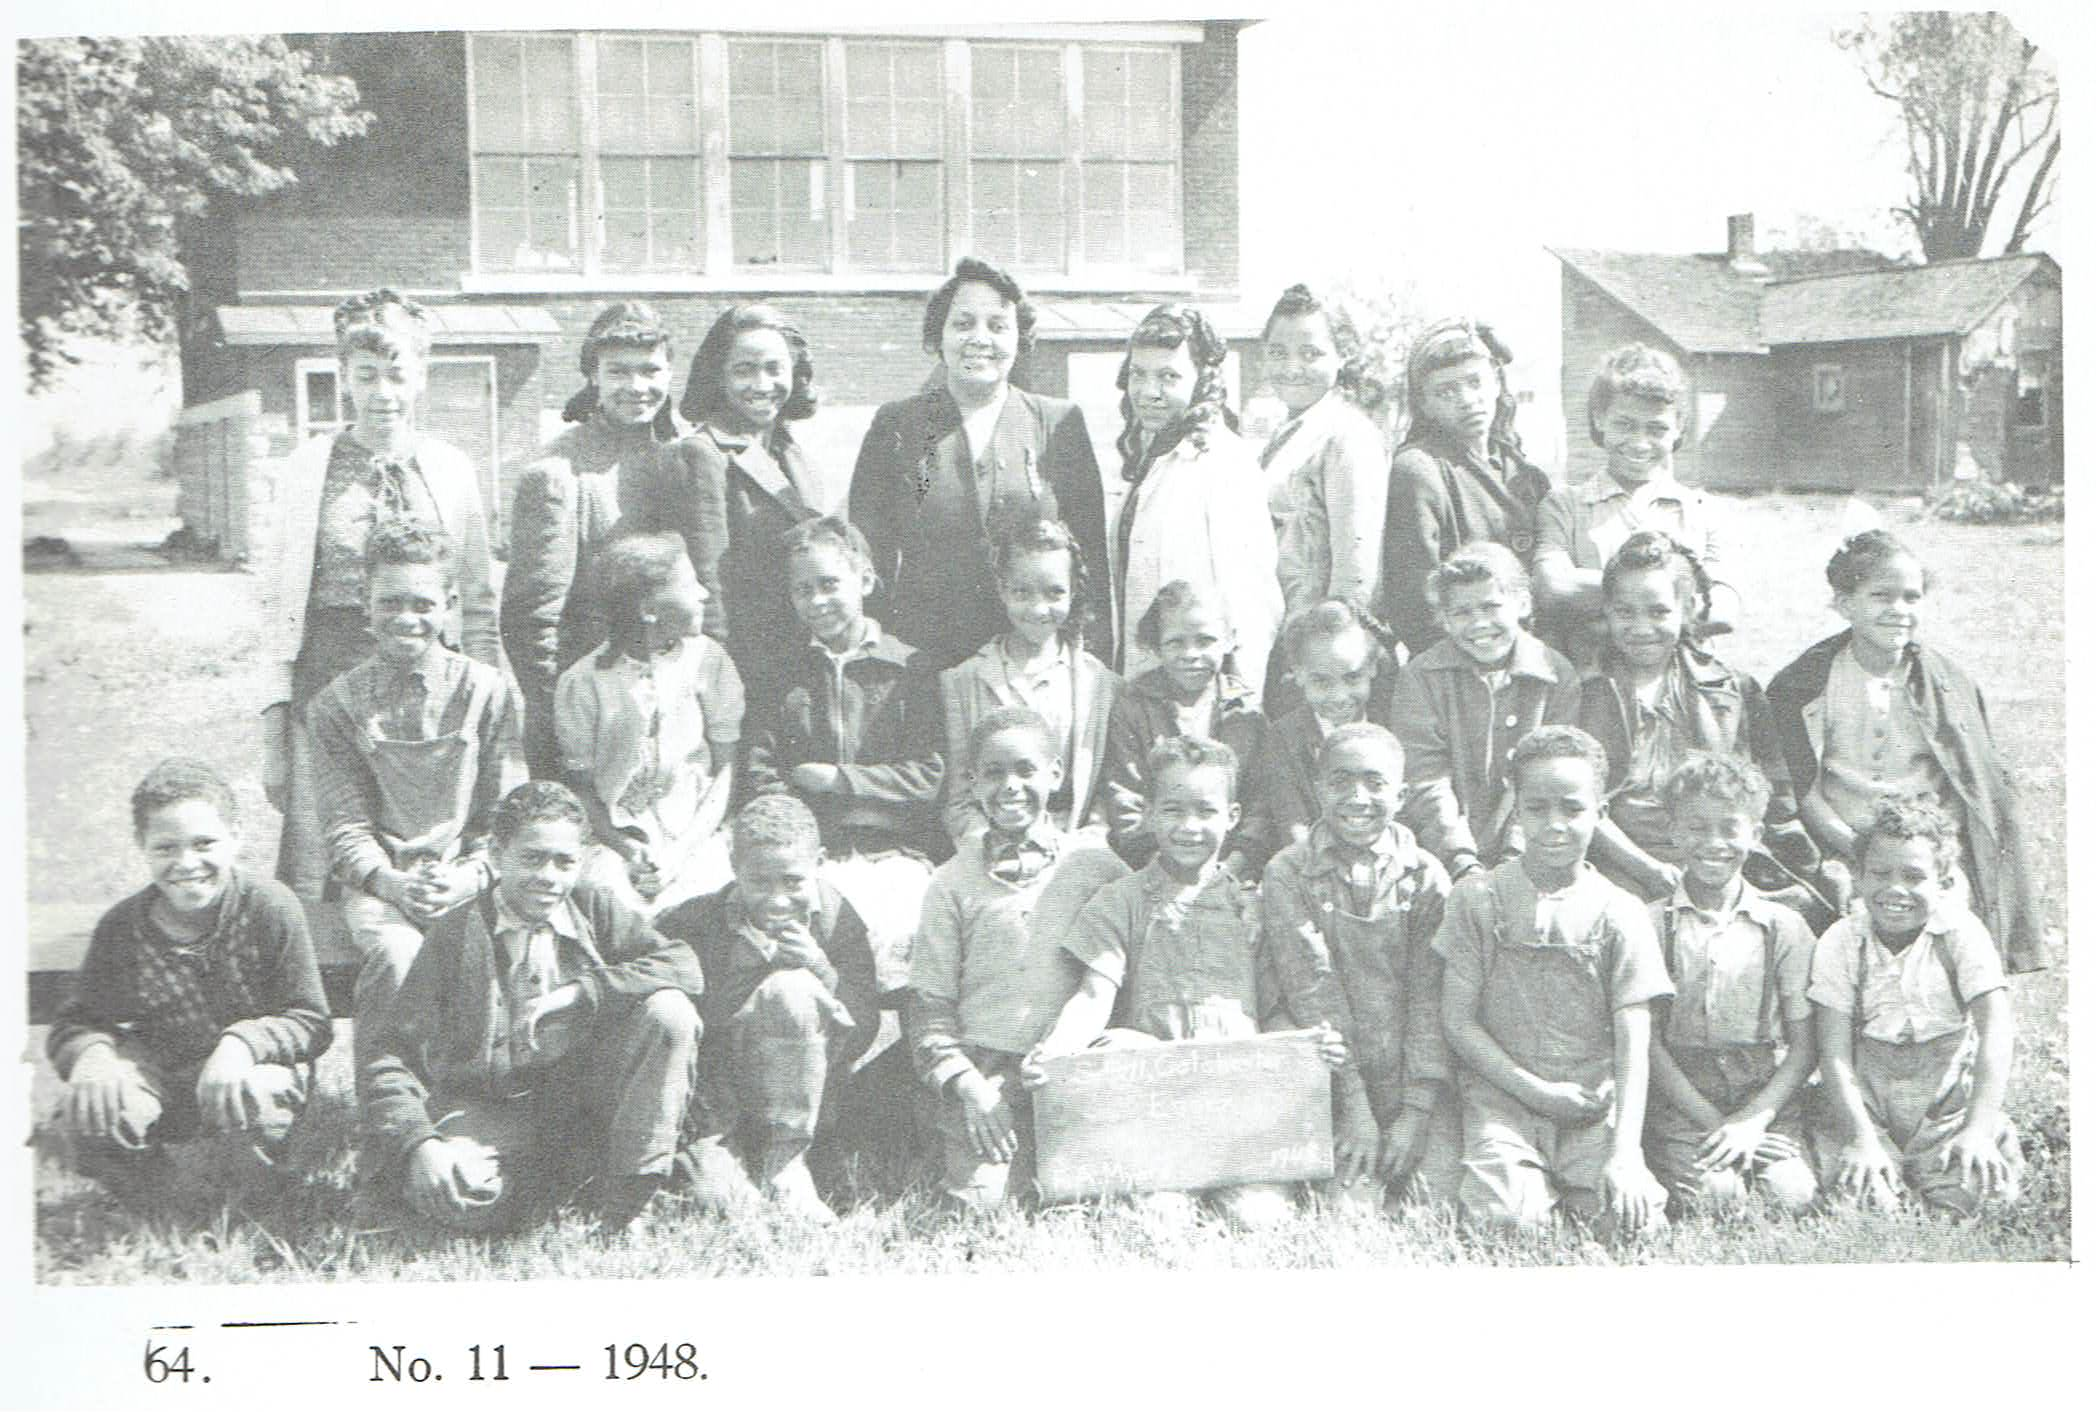 a black and white archival photo of children at school